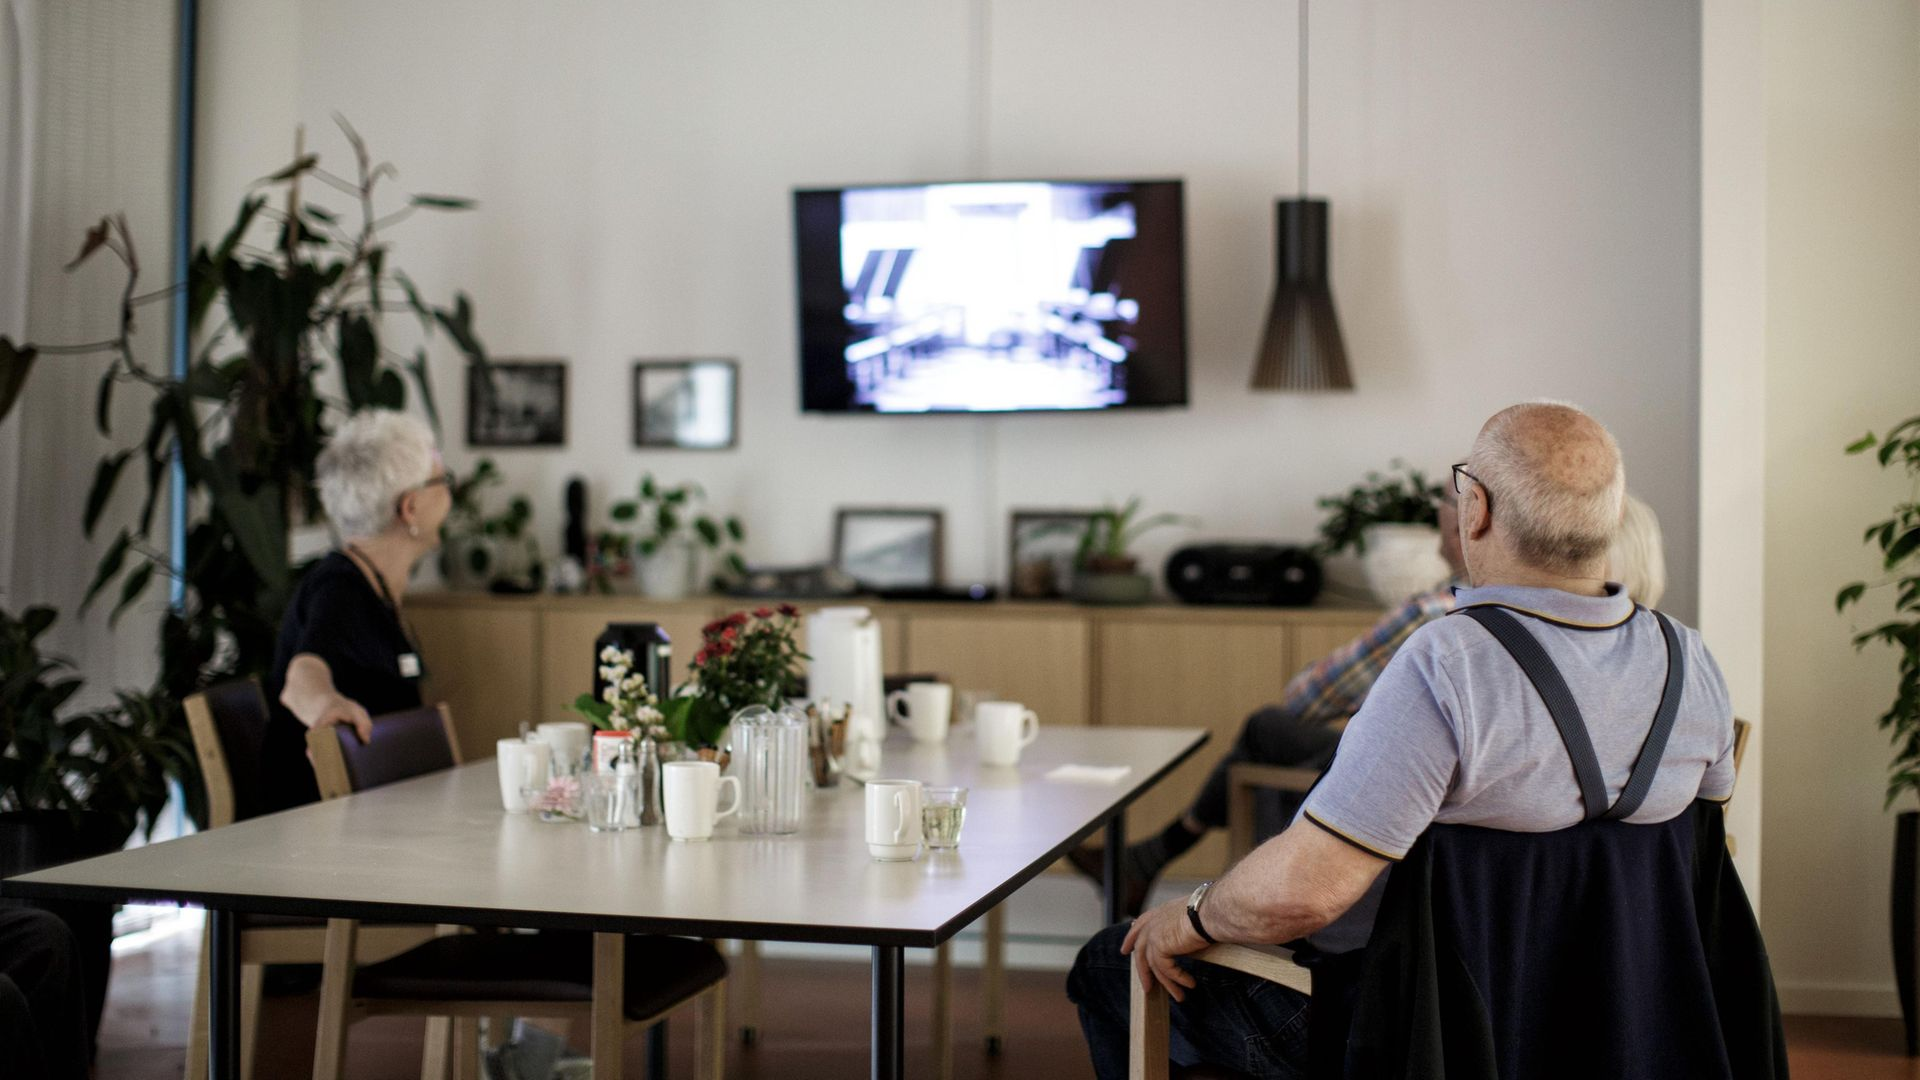 Care home residents watch a movie in Hillerod, near Copenhagen. Denmark has the highest % of GDP spend on social care in Europe. - Credit: AFP via Getty Images